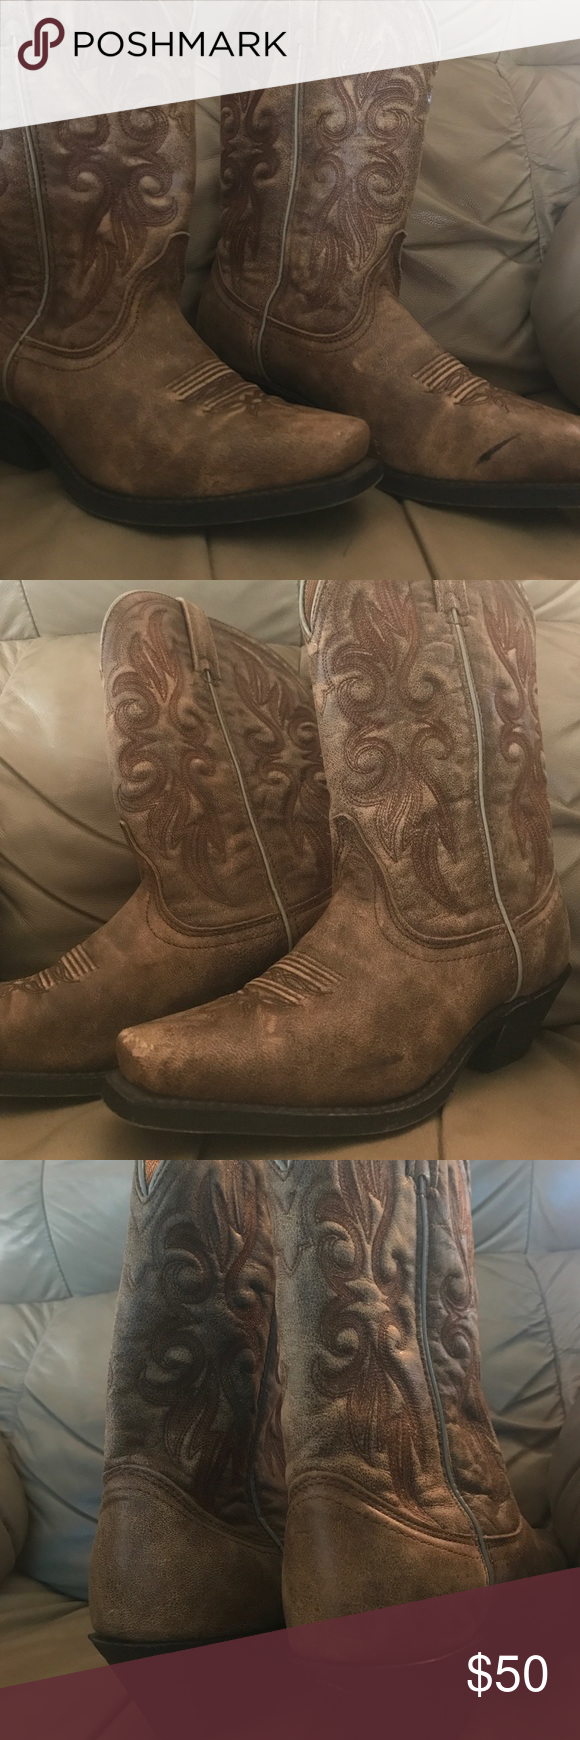 Ladies size 9m cowboy boots These have been worn a couple of times and have a few scuffs. They are by Laredo brand Laredo Shoes Heeled Boots